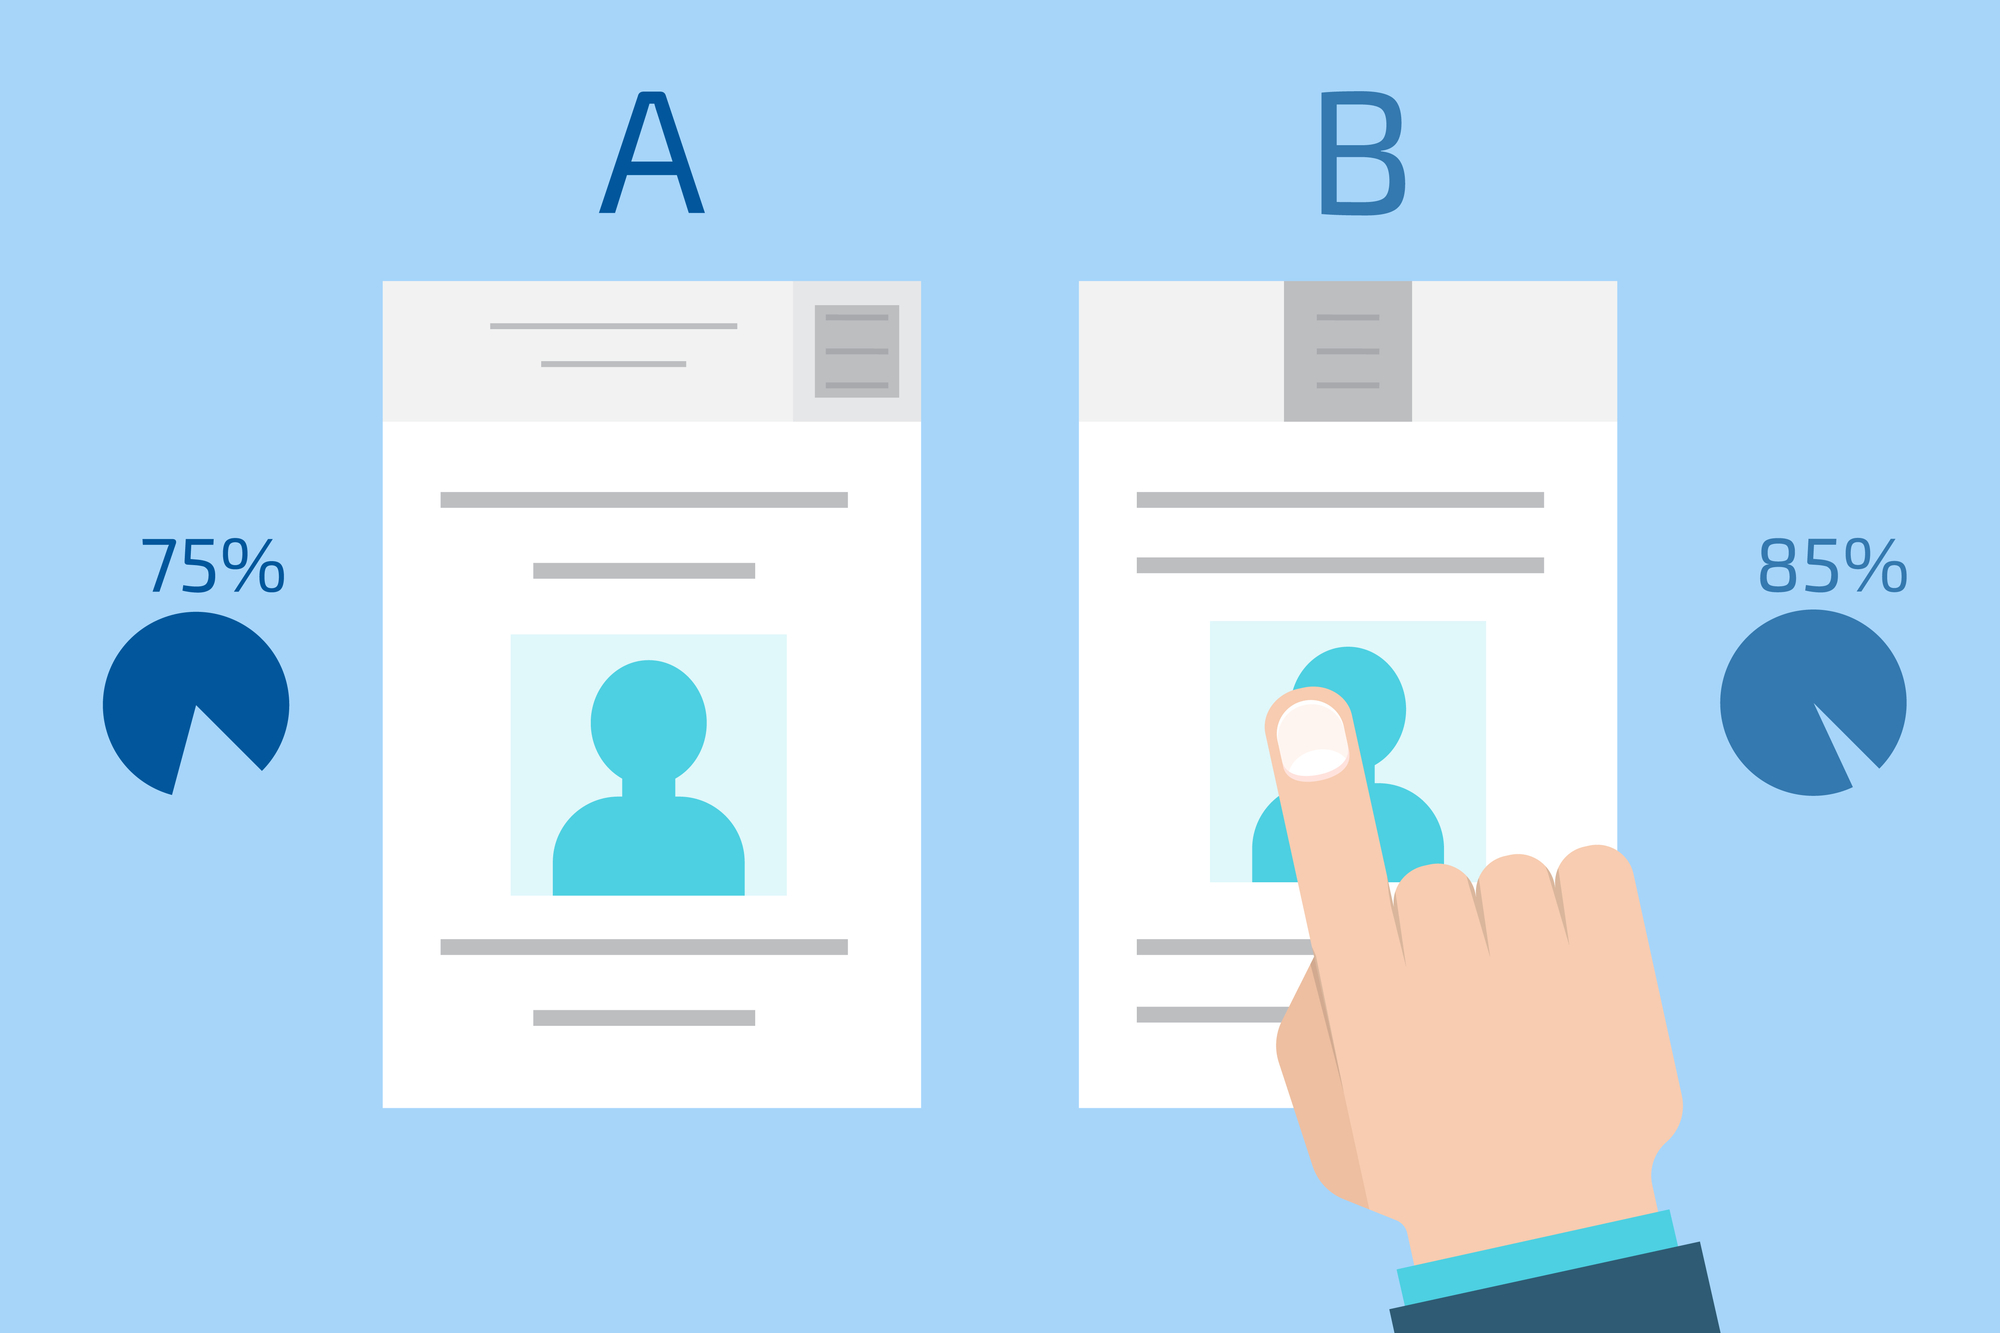 The Importance of Creative Testing | Graphic showing an A B test for marketing campaign